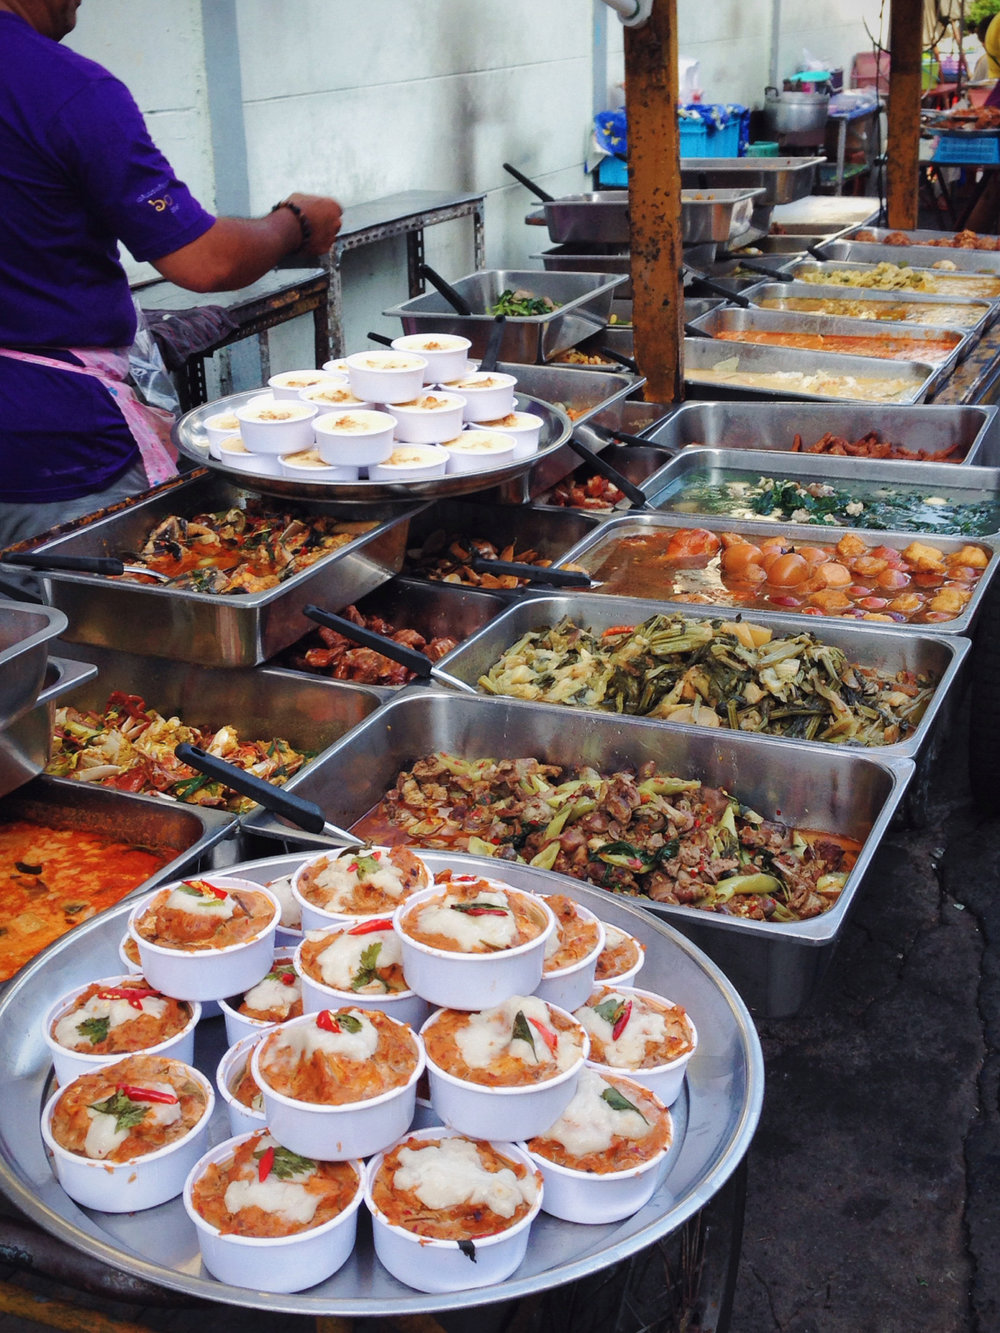 My culinary schooling and serve safe certification screams at the forefront of my mind as I take in the hunks of raw skewered meat and vegetables sitting mixed together on a bare and lonely table, as well as the plastic hotel pans of seafood lined up, almost certainly left out for more than four hours in the danger zone. But I'm hungry and curious, I can't resist. It's just too exciting, the area is too alive. Maybe it's the sight of all these new and exotic little foods beckoning to me. Maybe it's the noise, the sounds of cars, bikes, babies, and music swirling all around the cramped little streets producing It's own heartbeat. Or maybe it's the smell. The streets of Charoen krung 85 with it's dank heat that absorbs all the scents of fresh fruit, stinging spices, grilled goods and nearly soured meat- and leaves it hanging in the air around me. It's the smell of Bangkok.